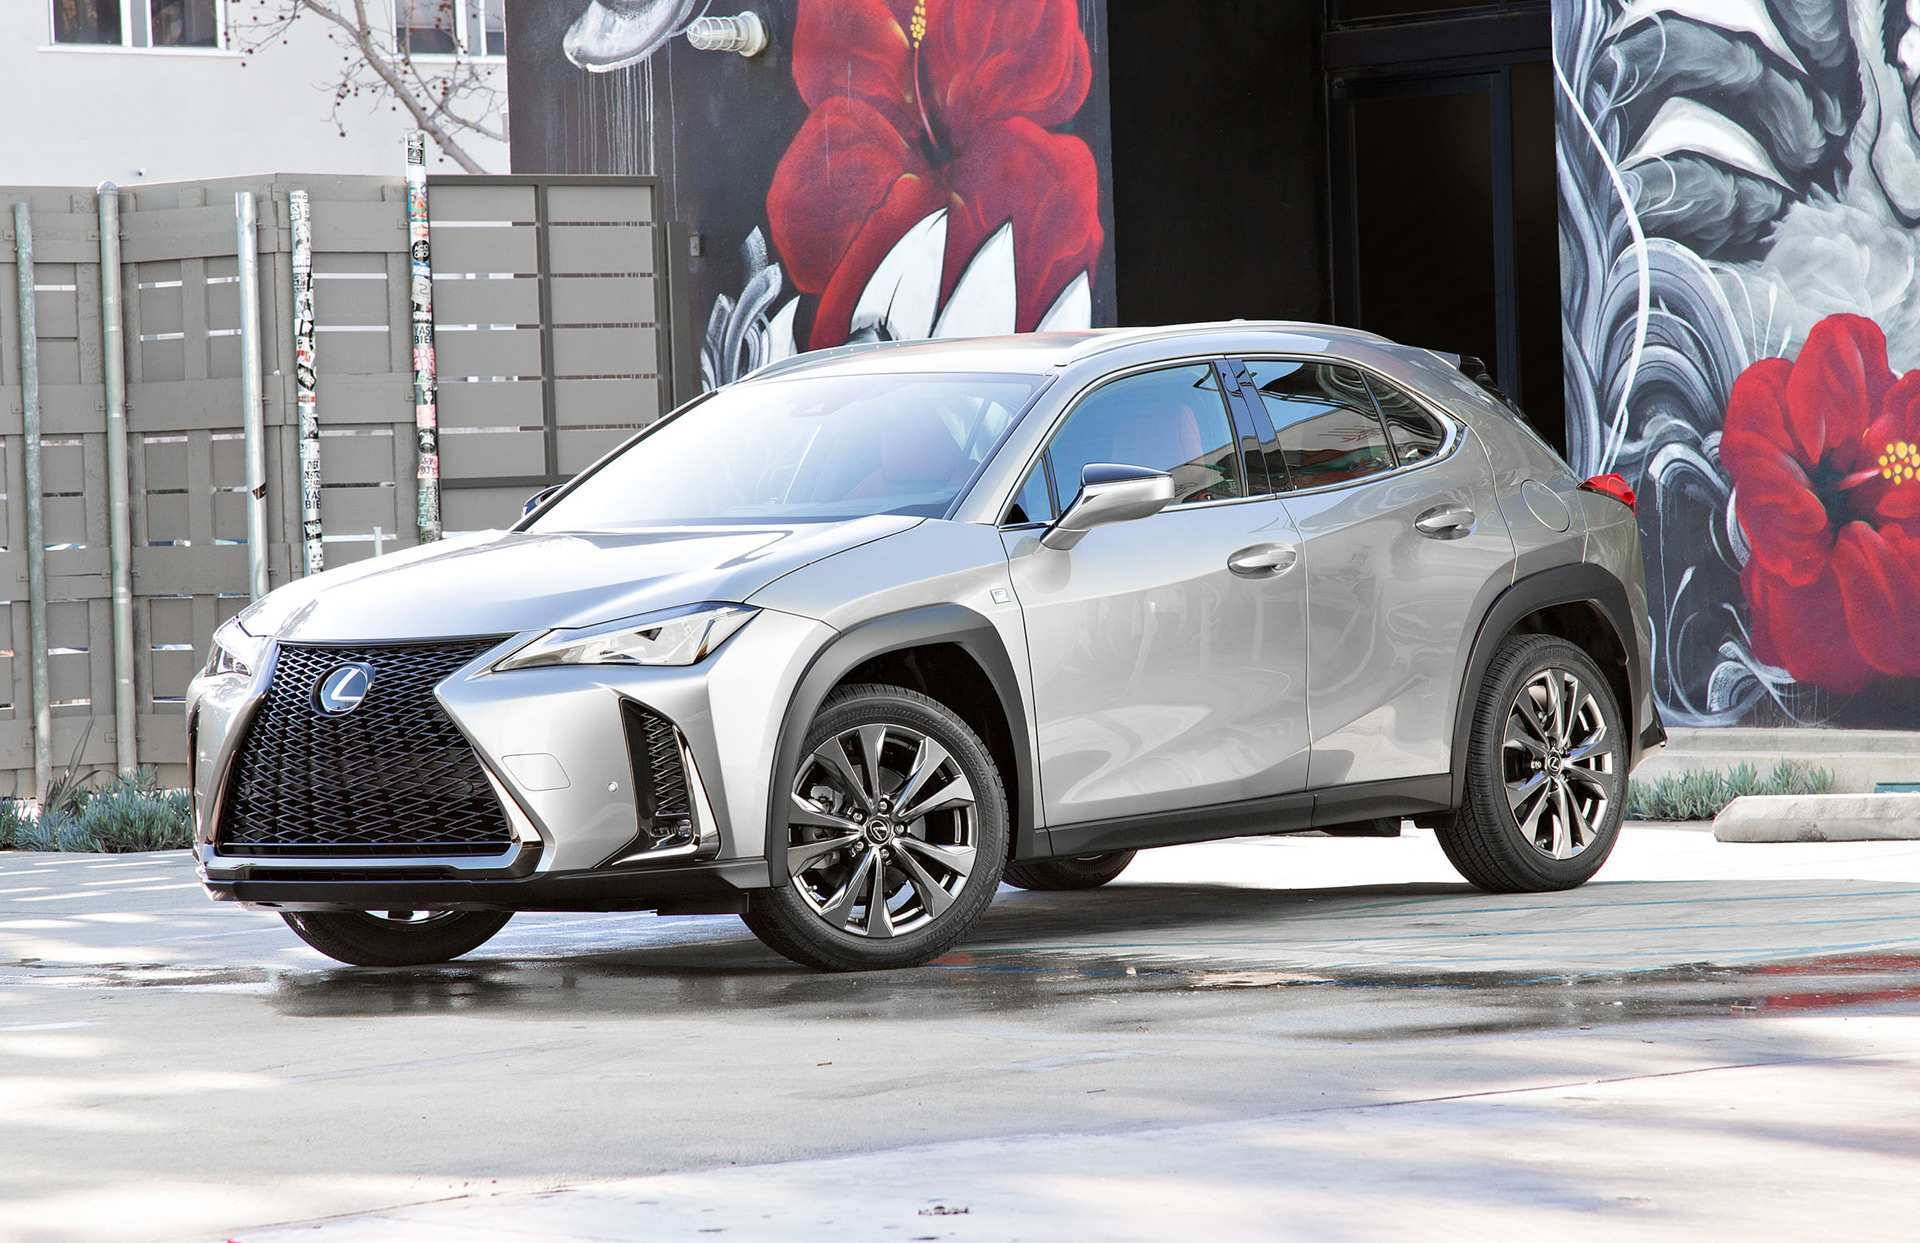 49 Concept of Best 2019 Lexus Lineup Redesign And Price Model for Best 2019 Lexus Lineup Redesign And Price